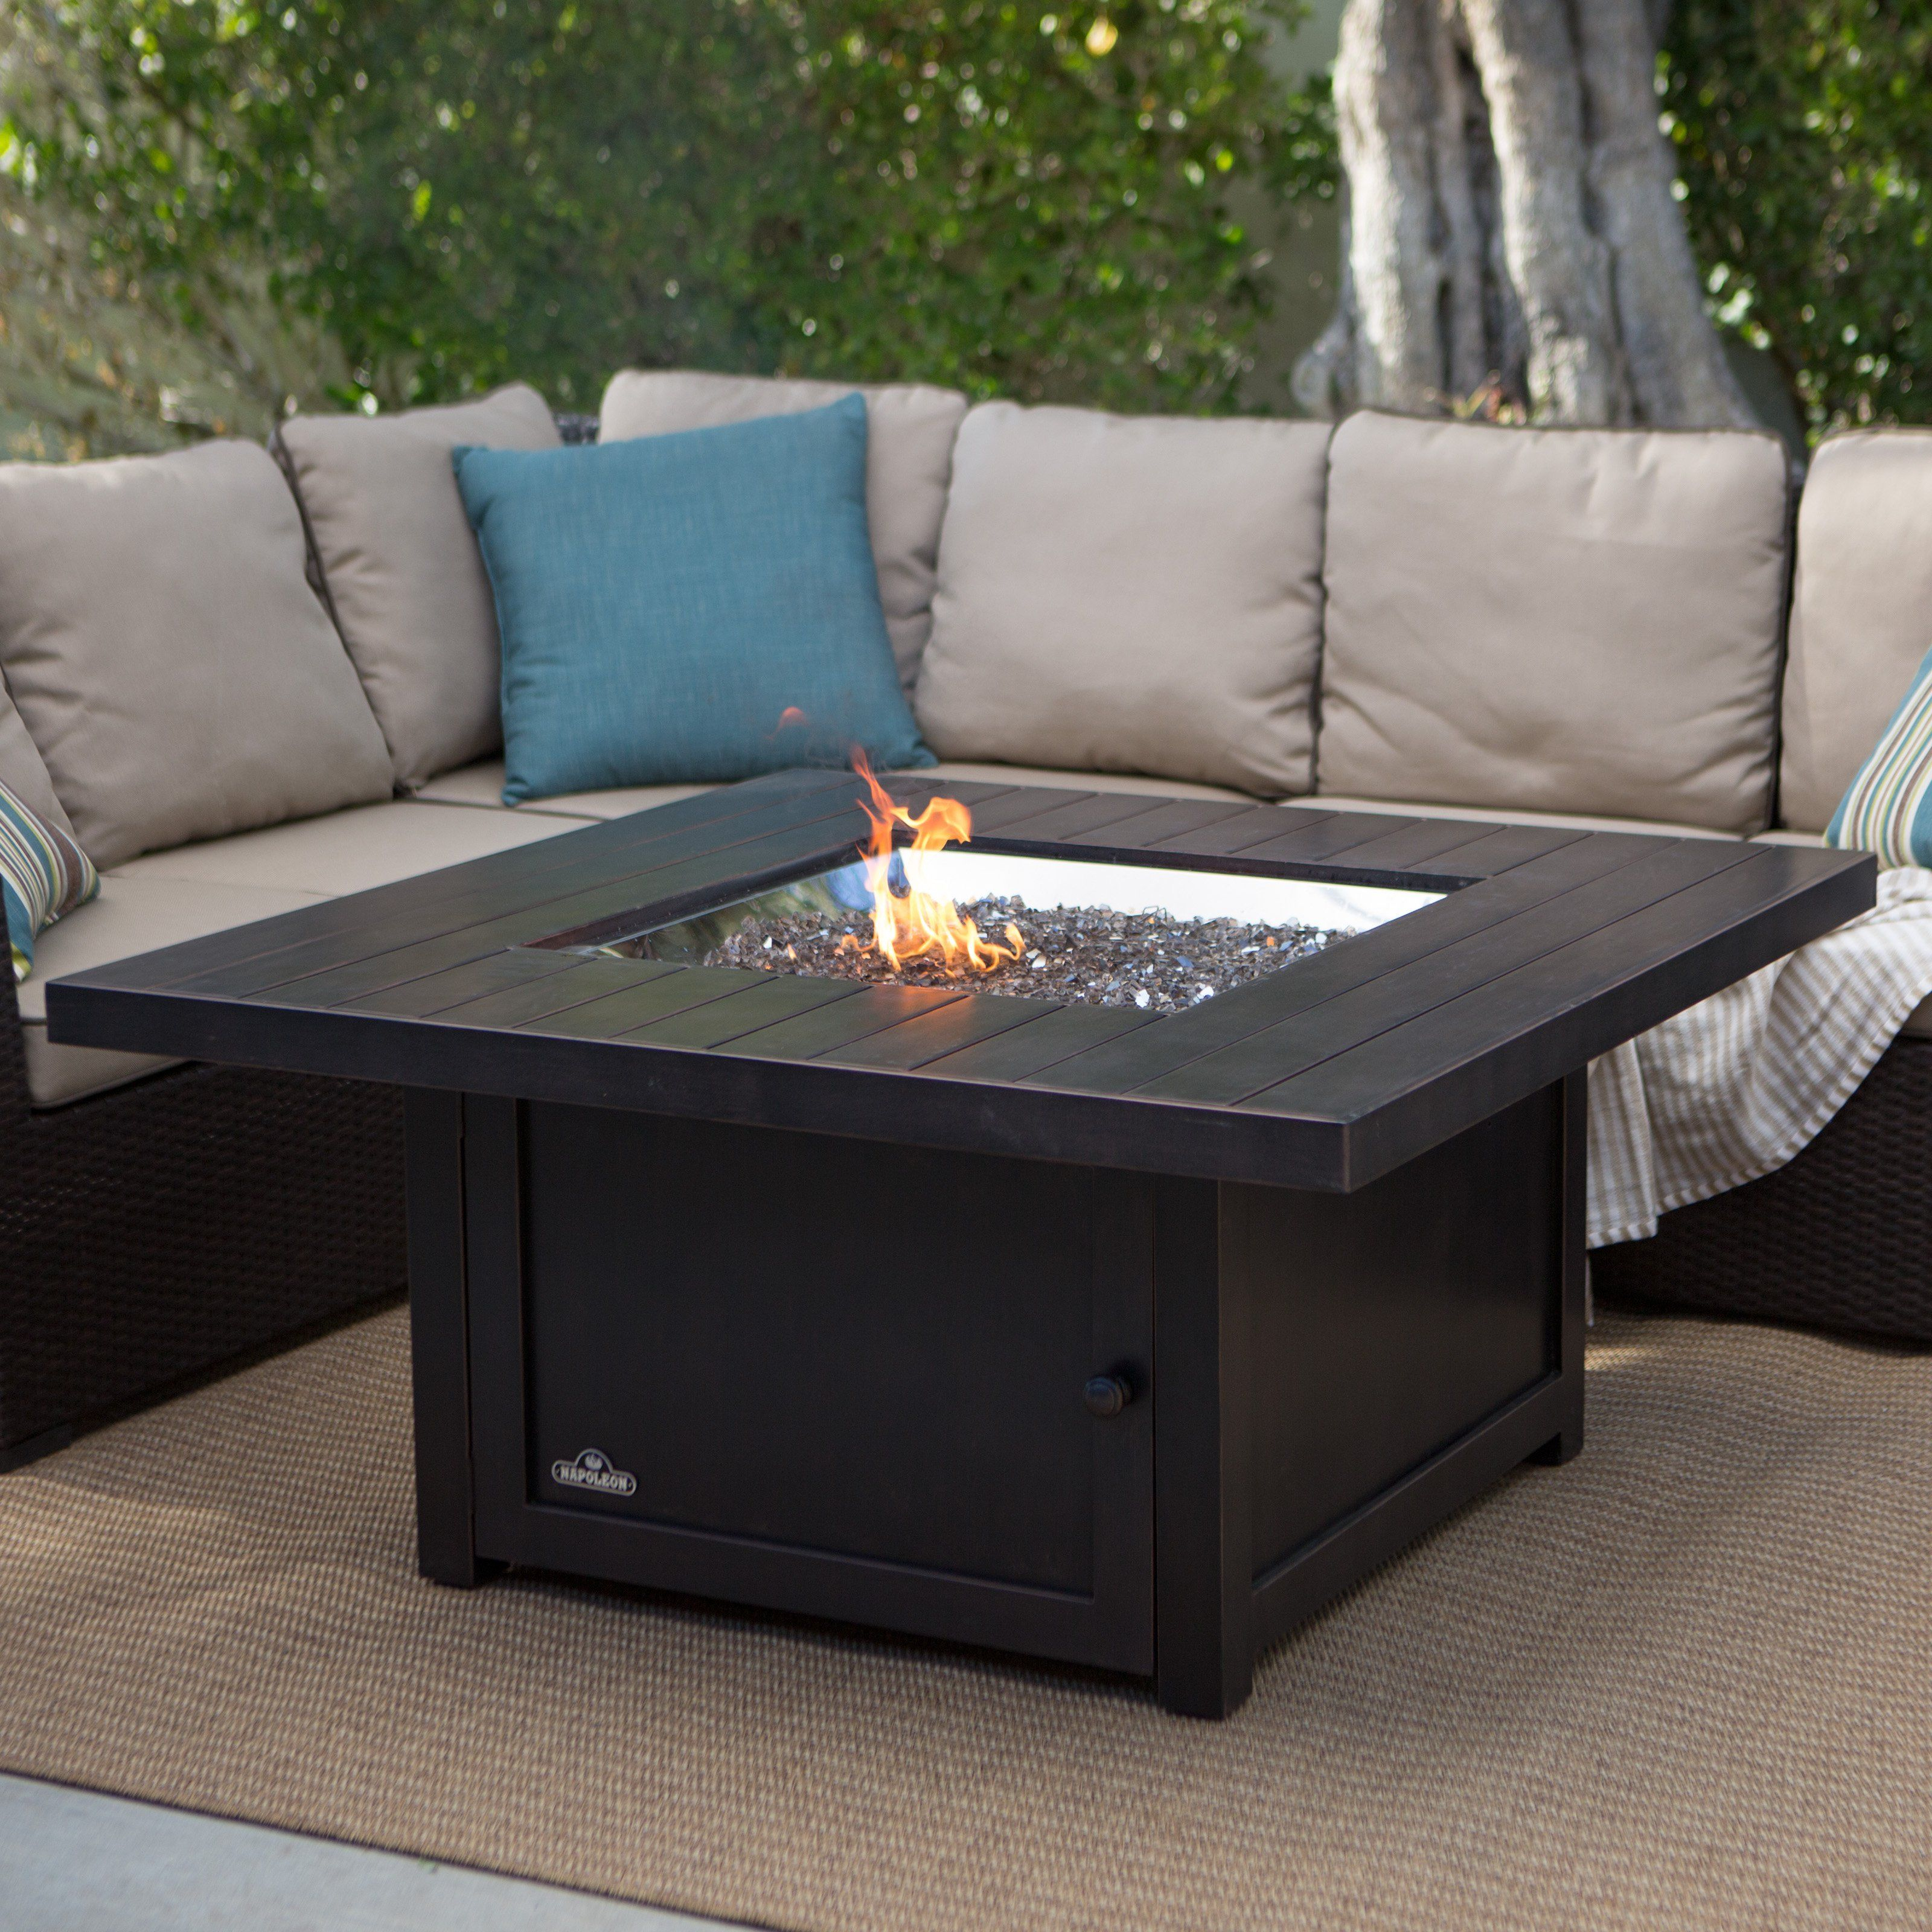 Napoleon Square Propane Fire Pit Table Turn The Party Up A Notch pertaining to size 3200 X 3200